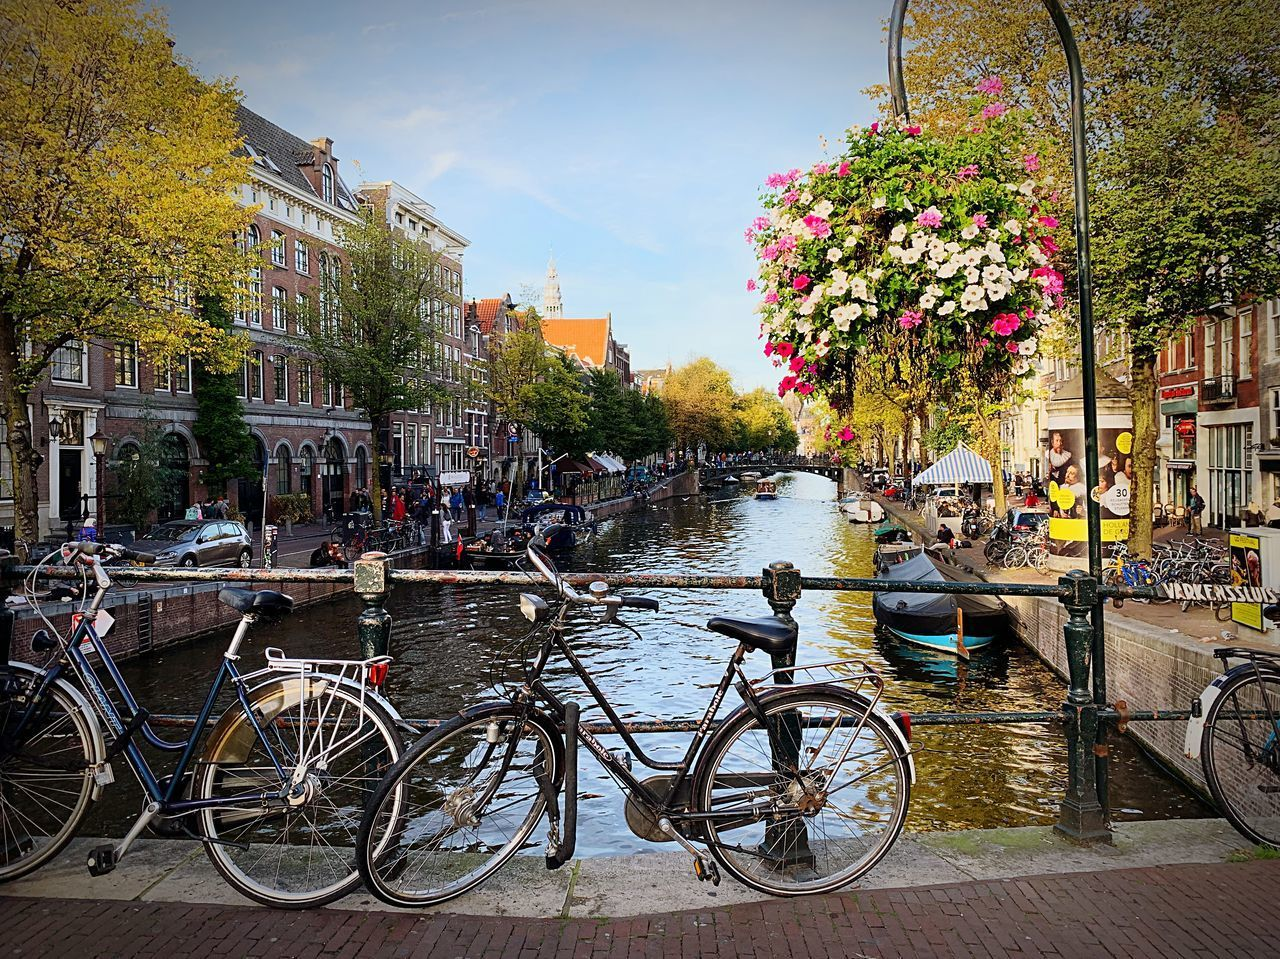 transportation, bicycle, building exterior, architecture, mode of transportation, built structure, city, water, plant, land vehicle, tree, nature, group of people, day, incidental people, canal, real people, sky, large group of people, outdoors